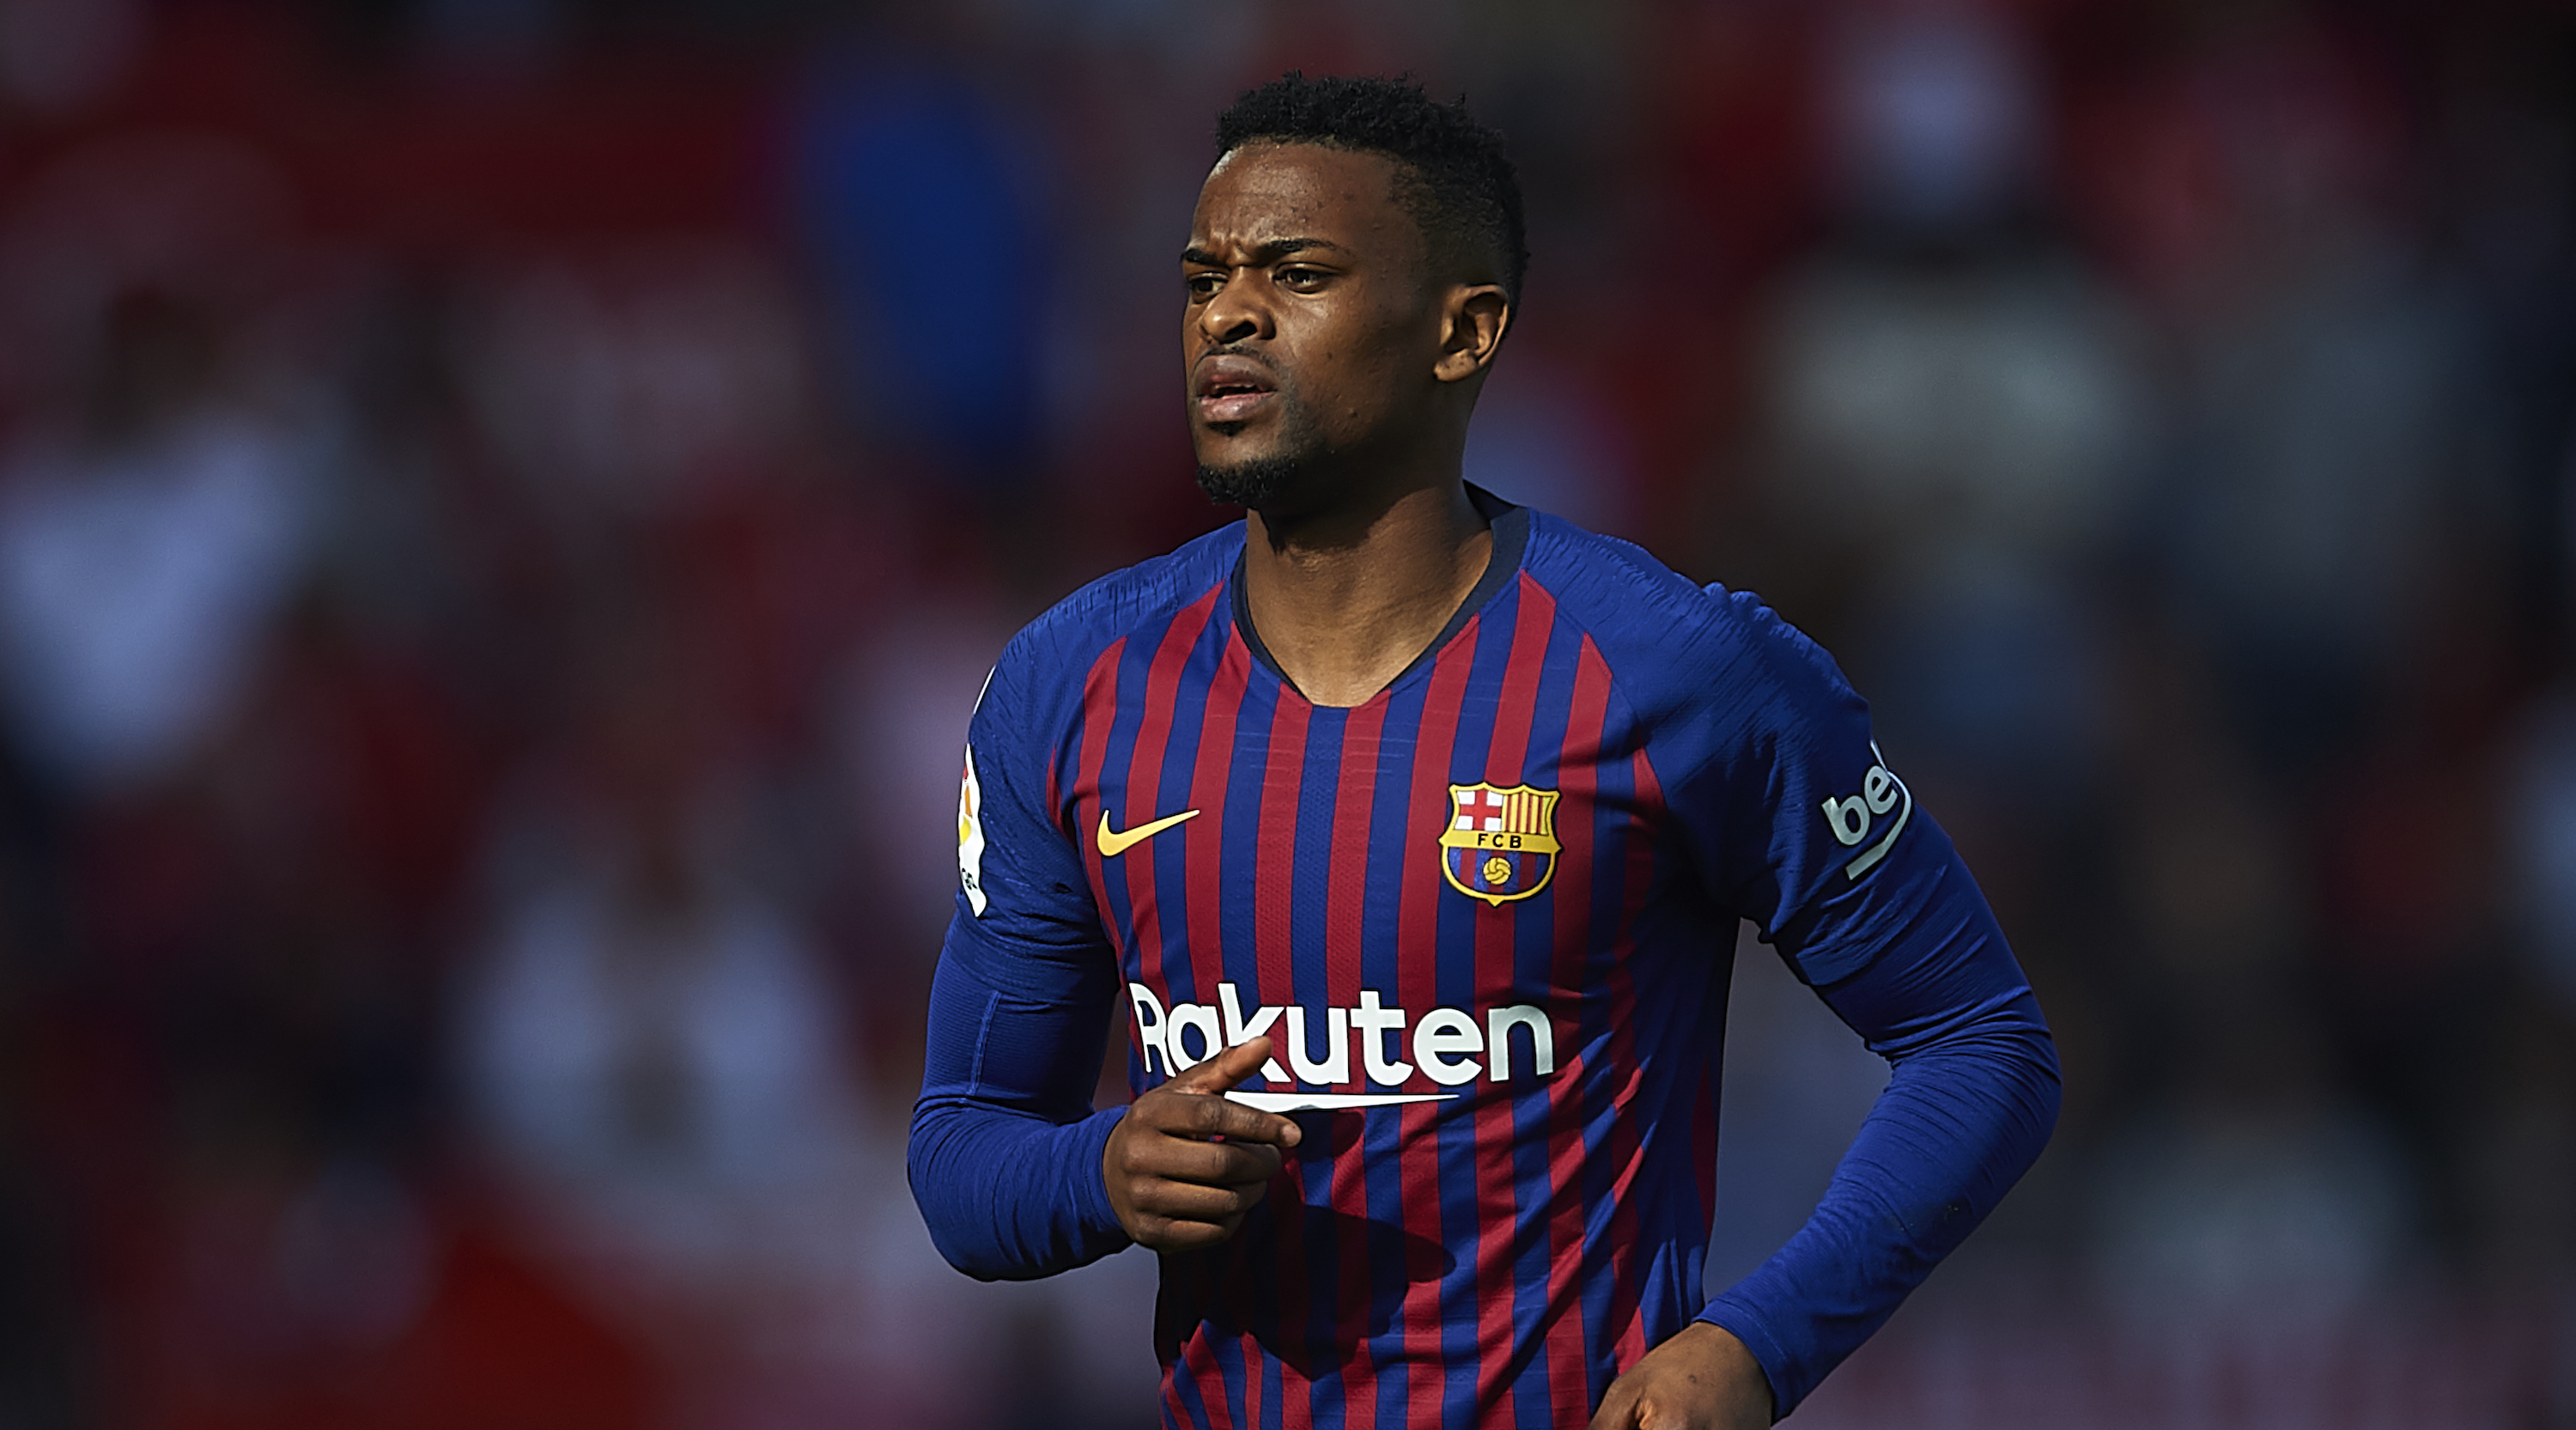 Nelson Semedo of FC Barcelona looks on during the La Liga match between Sevilla FC and FC Barcelona at Estadio Ramon Sanchez Pizjuan on February 23, 2019 in Seville, Spain. (Photo by Aitor Alcalde/Getty Images)